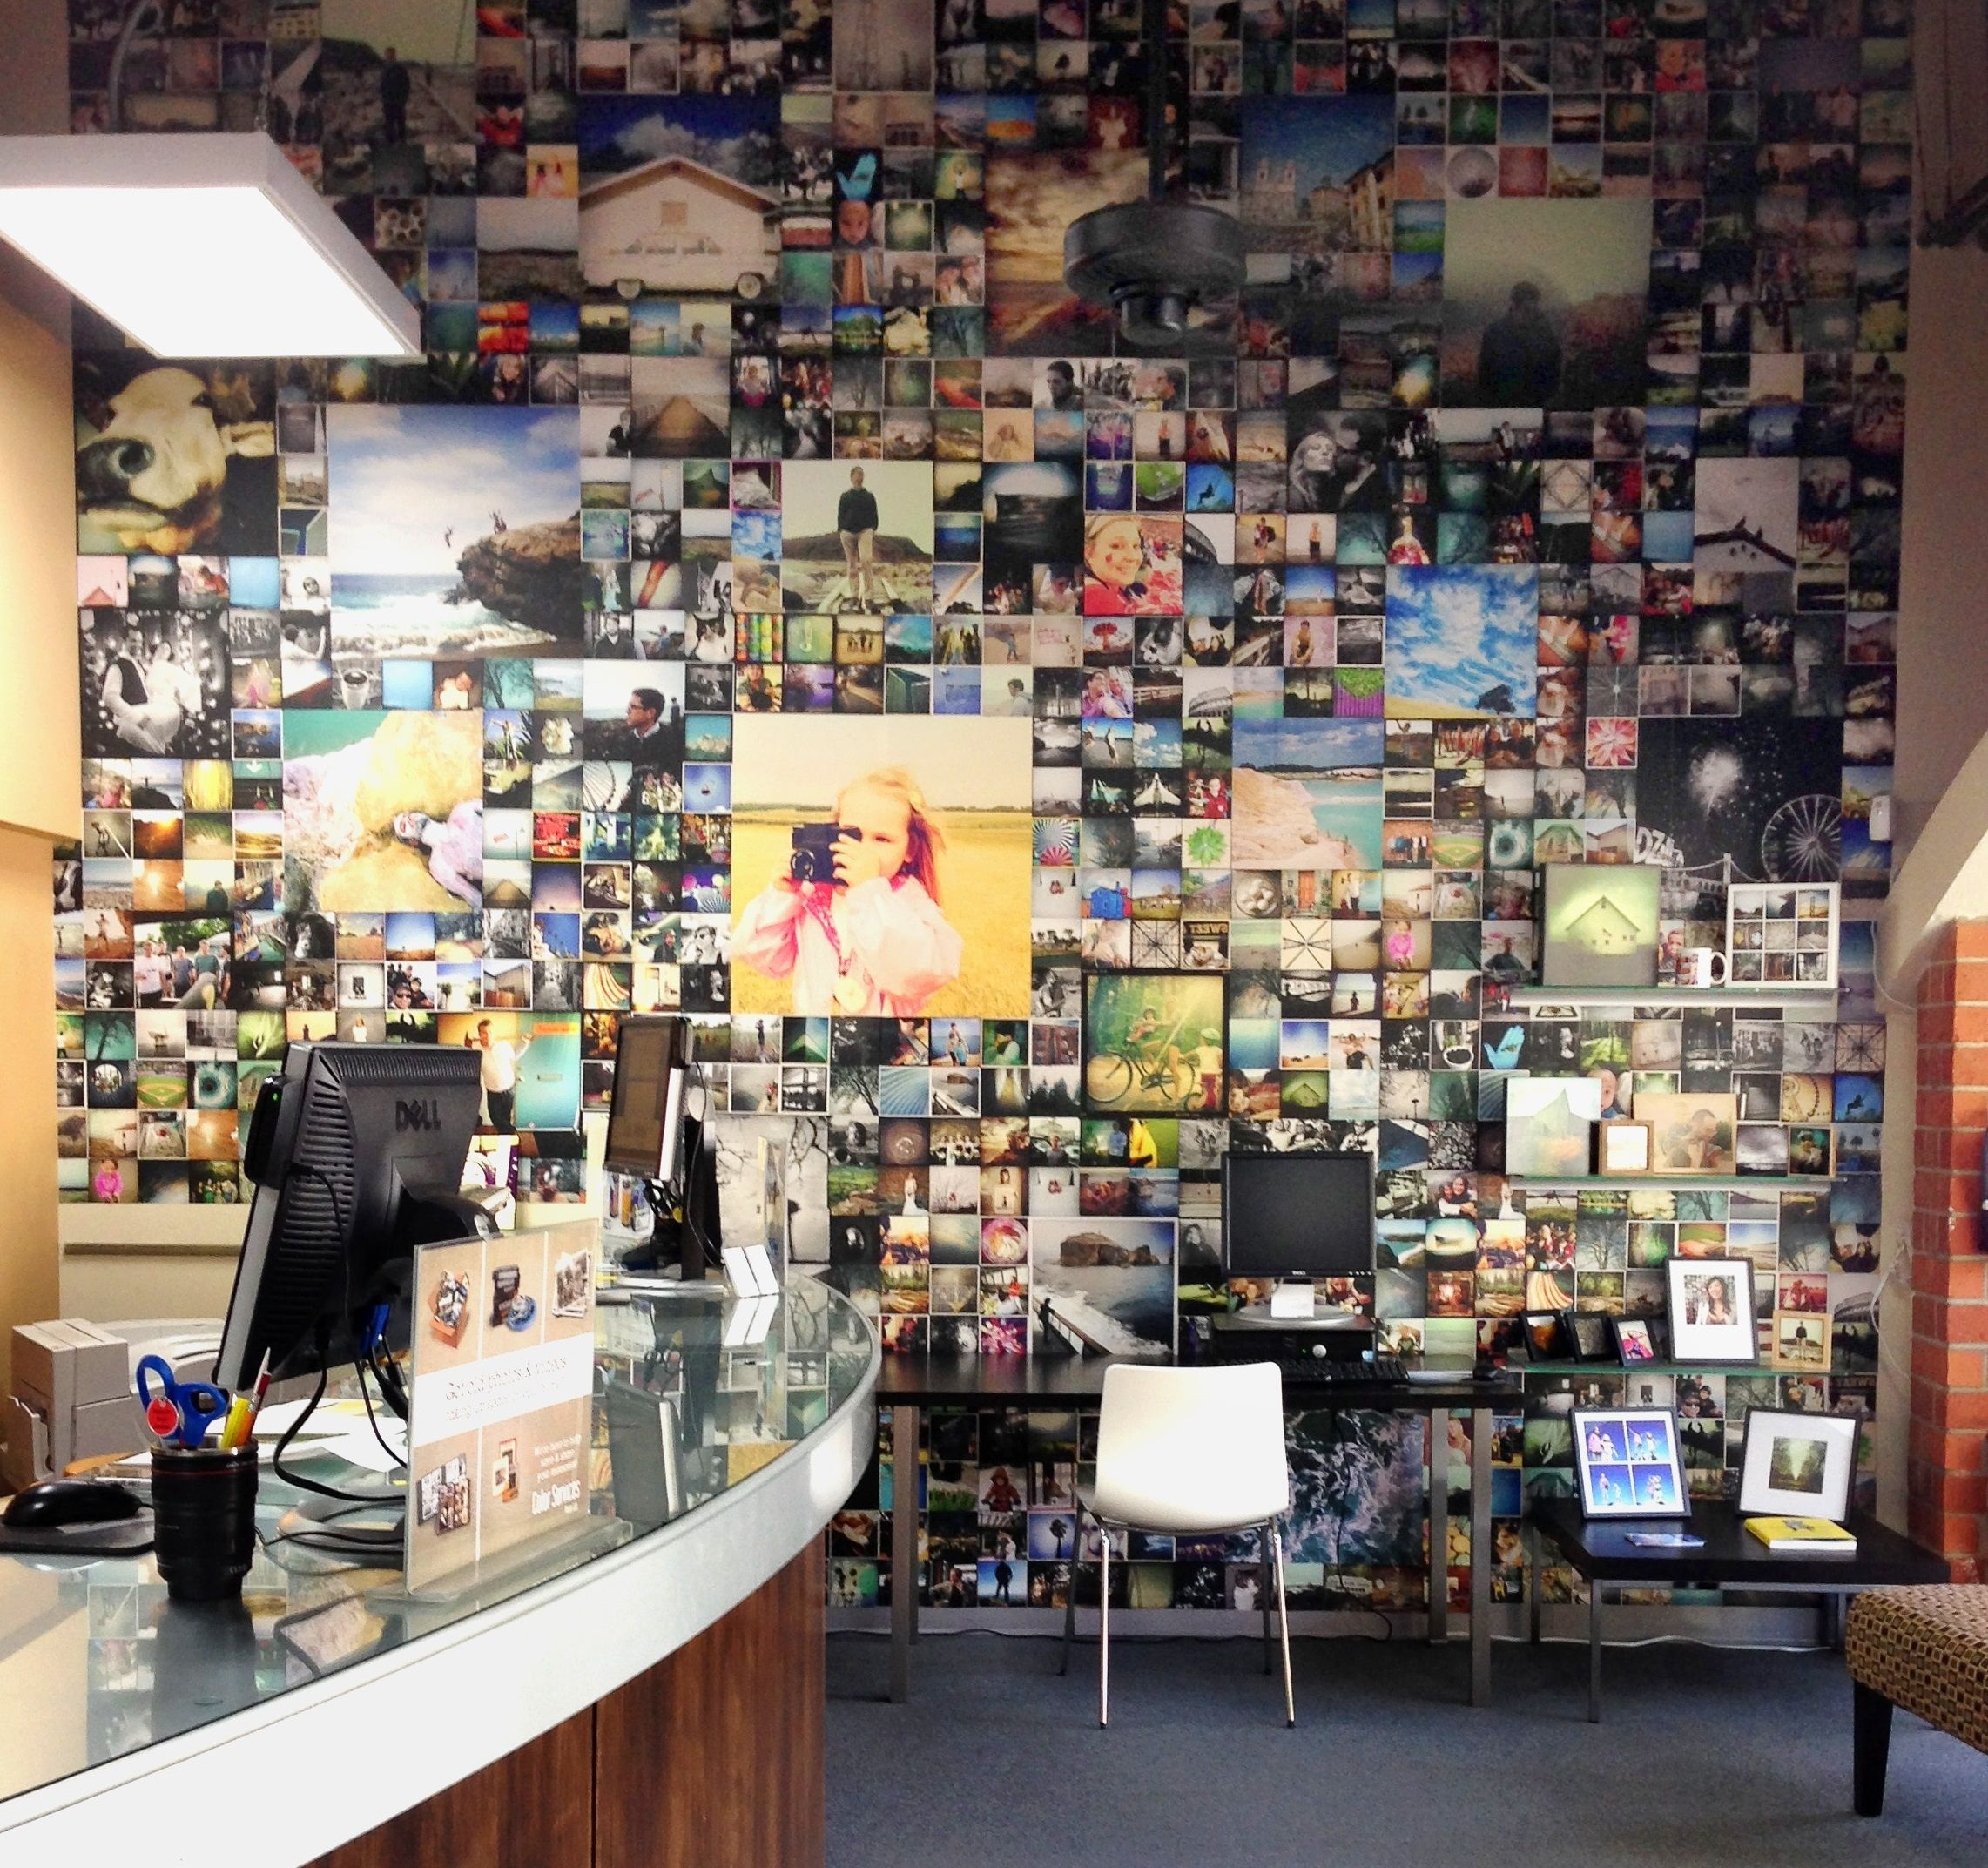 Color services inspires with a unique photo collage wall